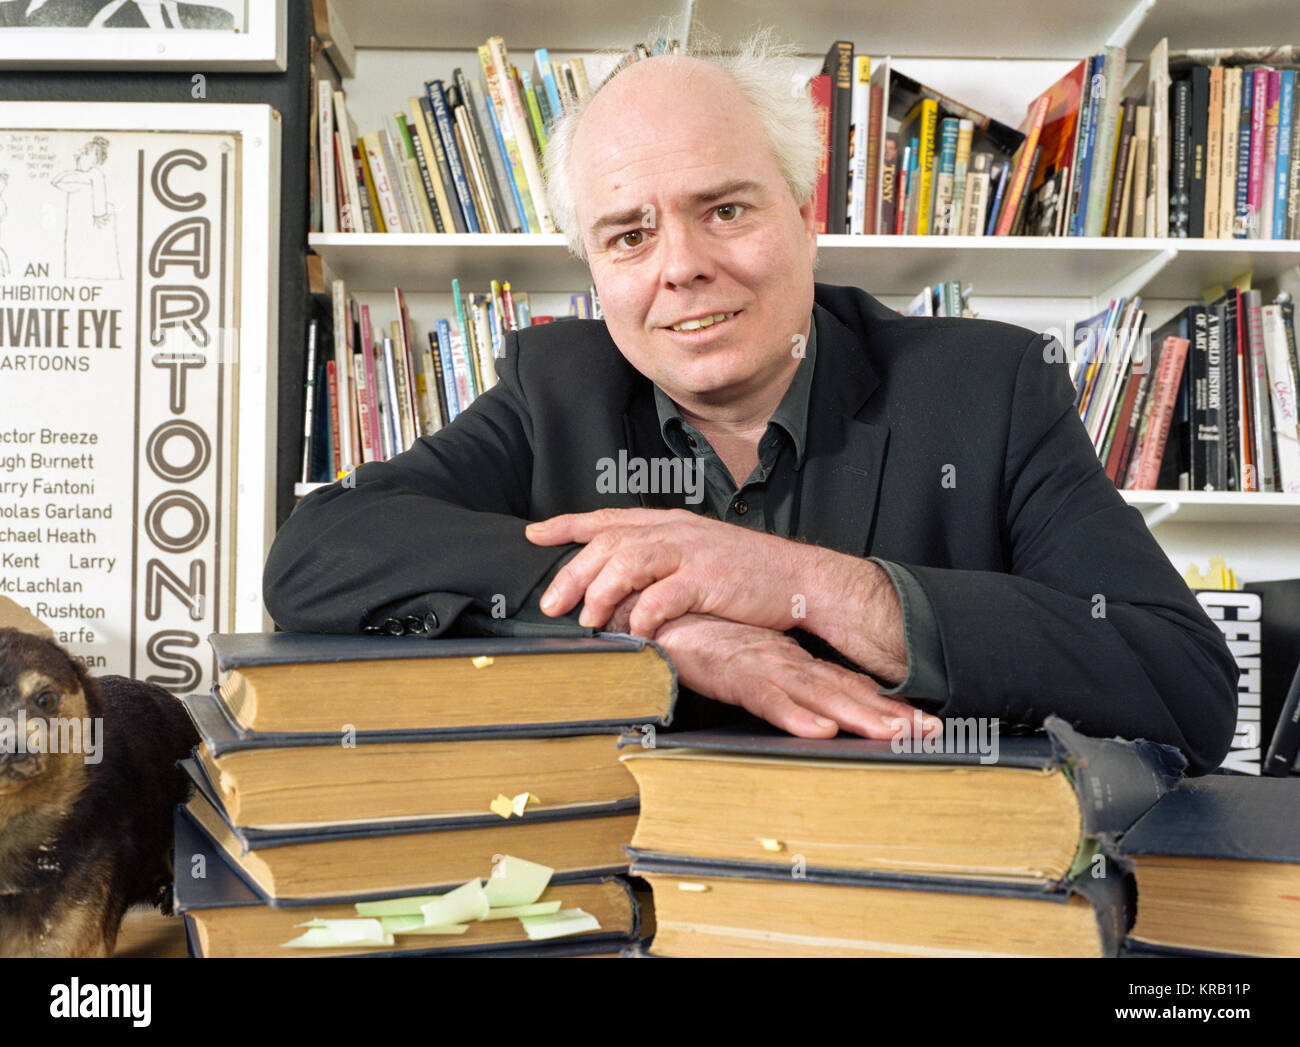 English Journalist and Author Francis Wheen at the Private Eye offices, London, England, United Kingdom. - Stock Image